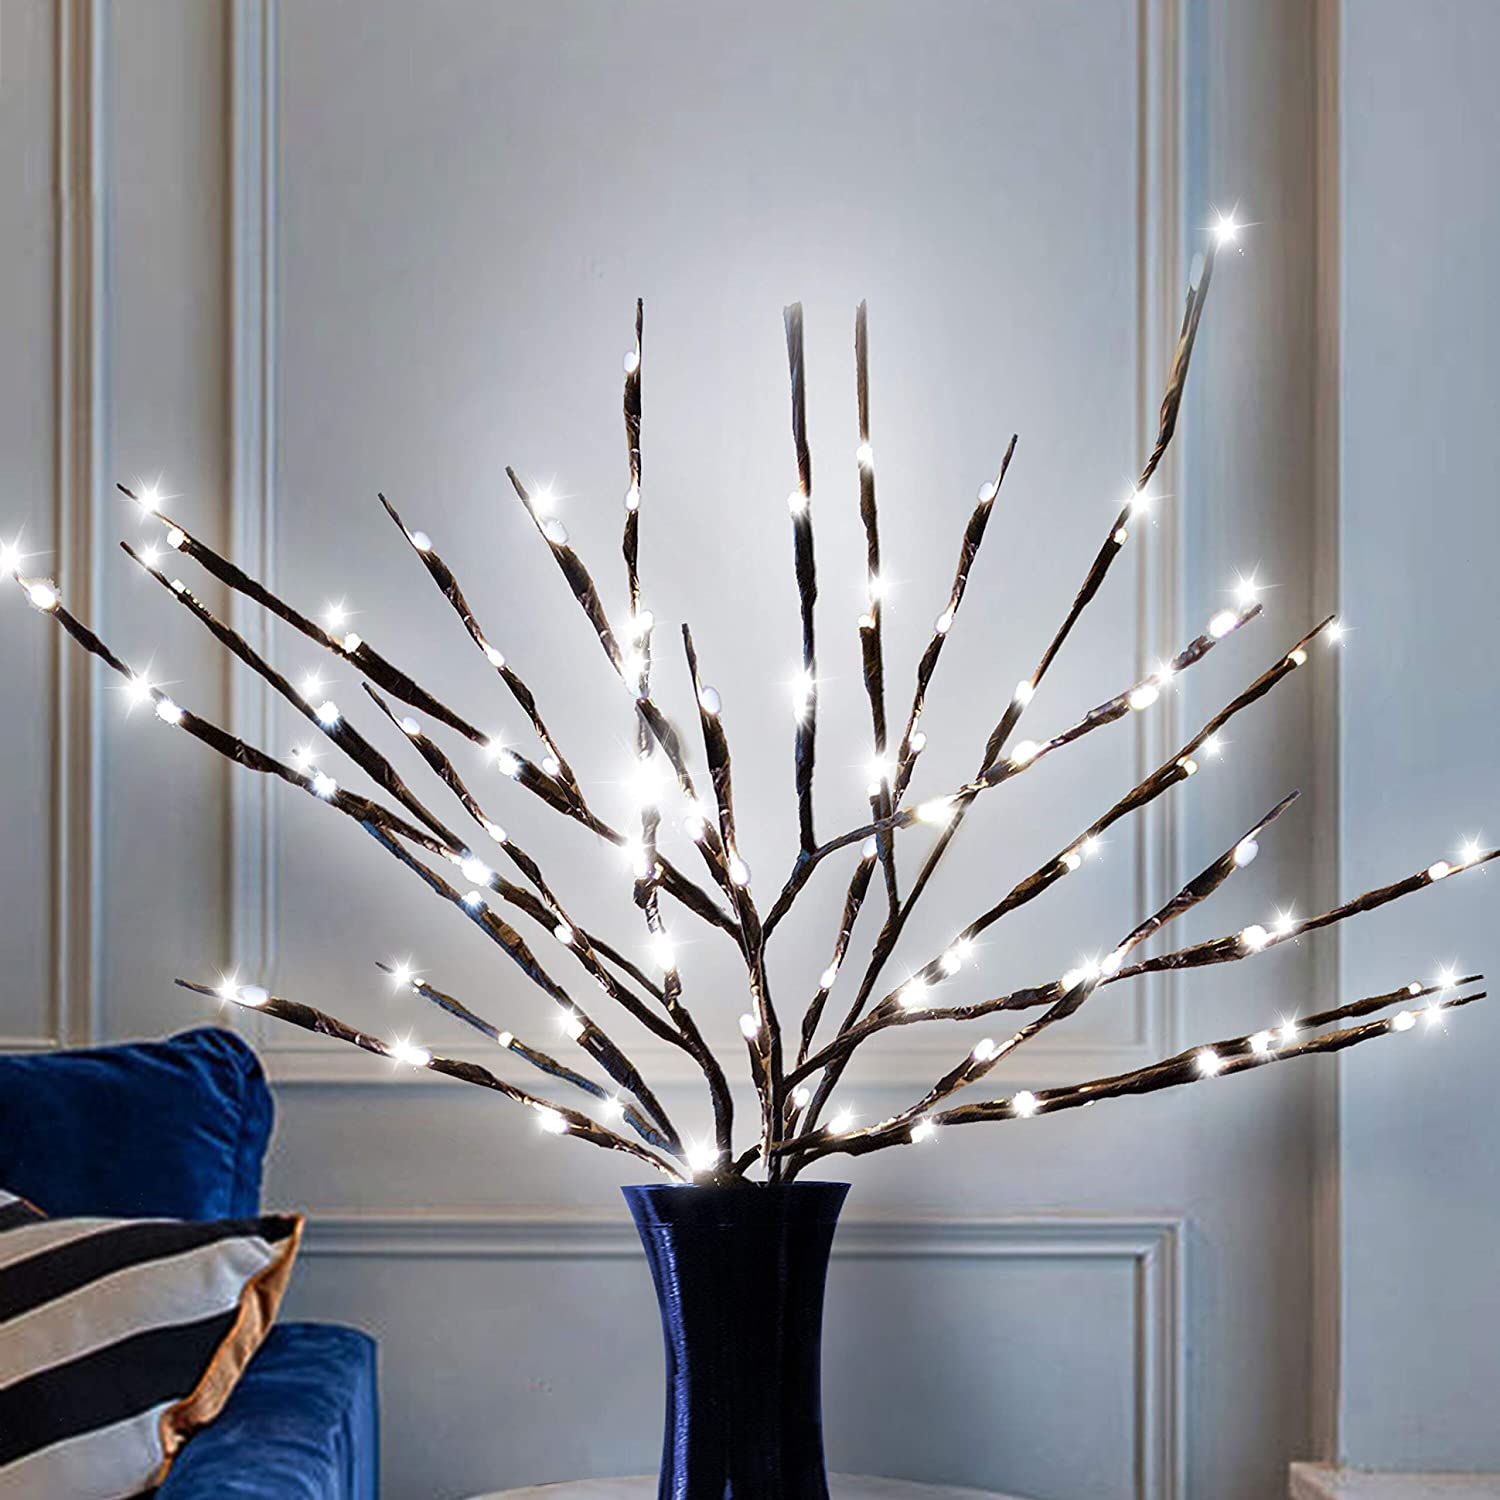 Joiedomi 3 Branch Lights 20'' 20LED Willow Twig Branch Decorative Lights for Christmas Home Party Wedding Garden Xmas Garden Patio Bedroom Indoor Outdoor Decor